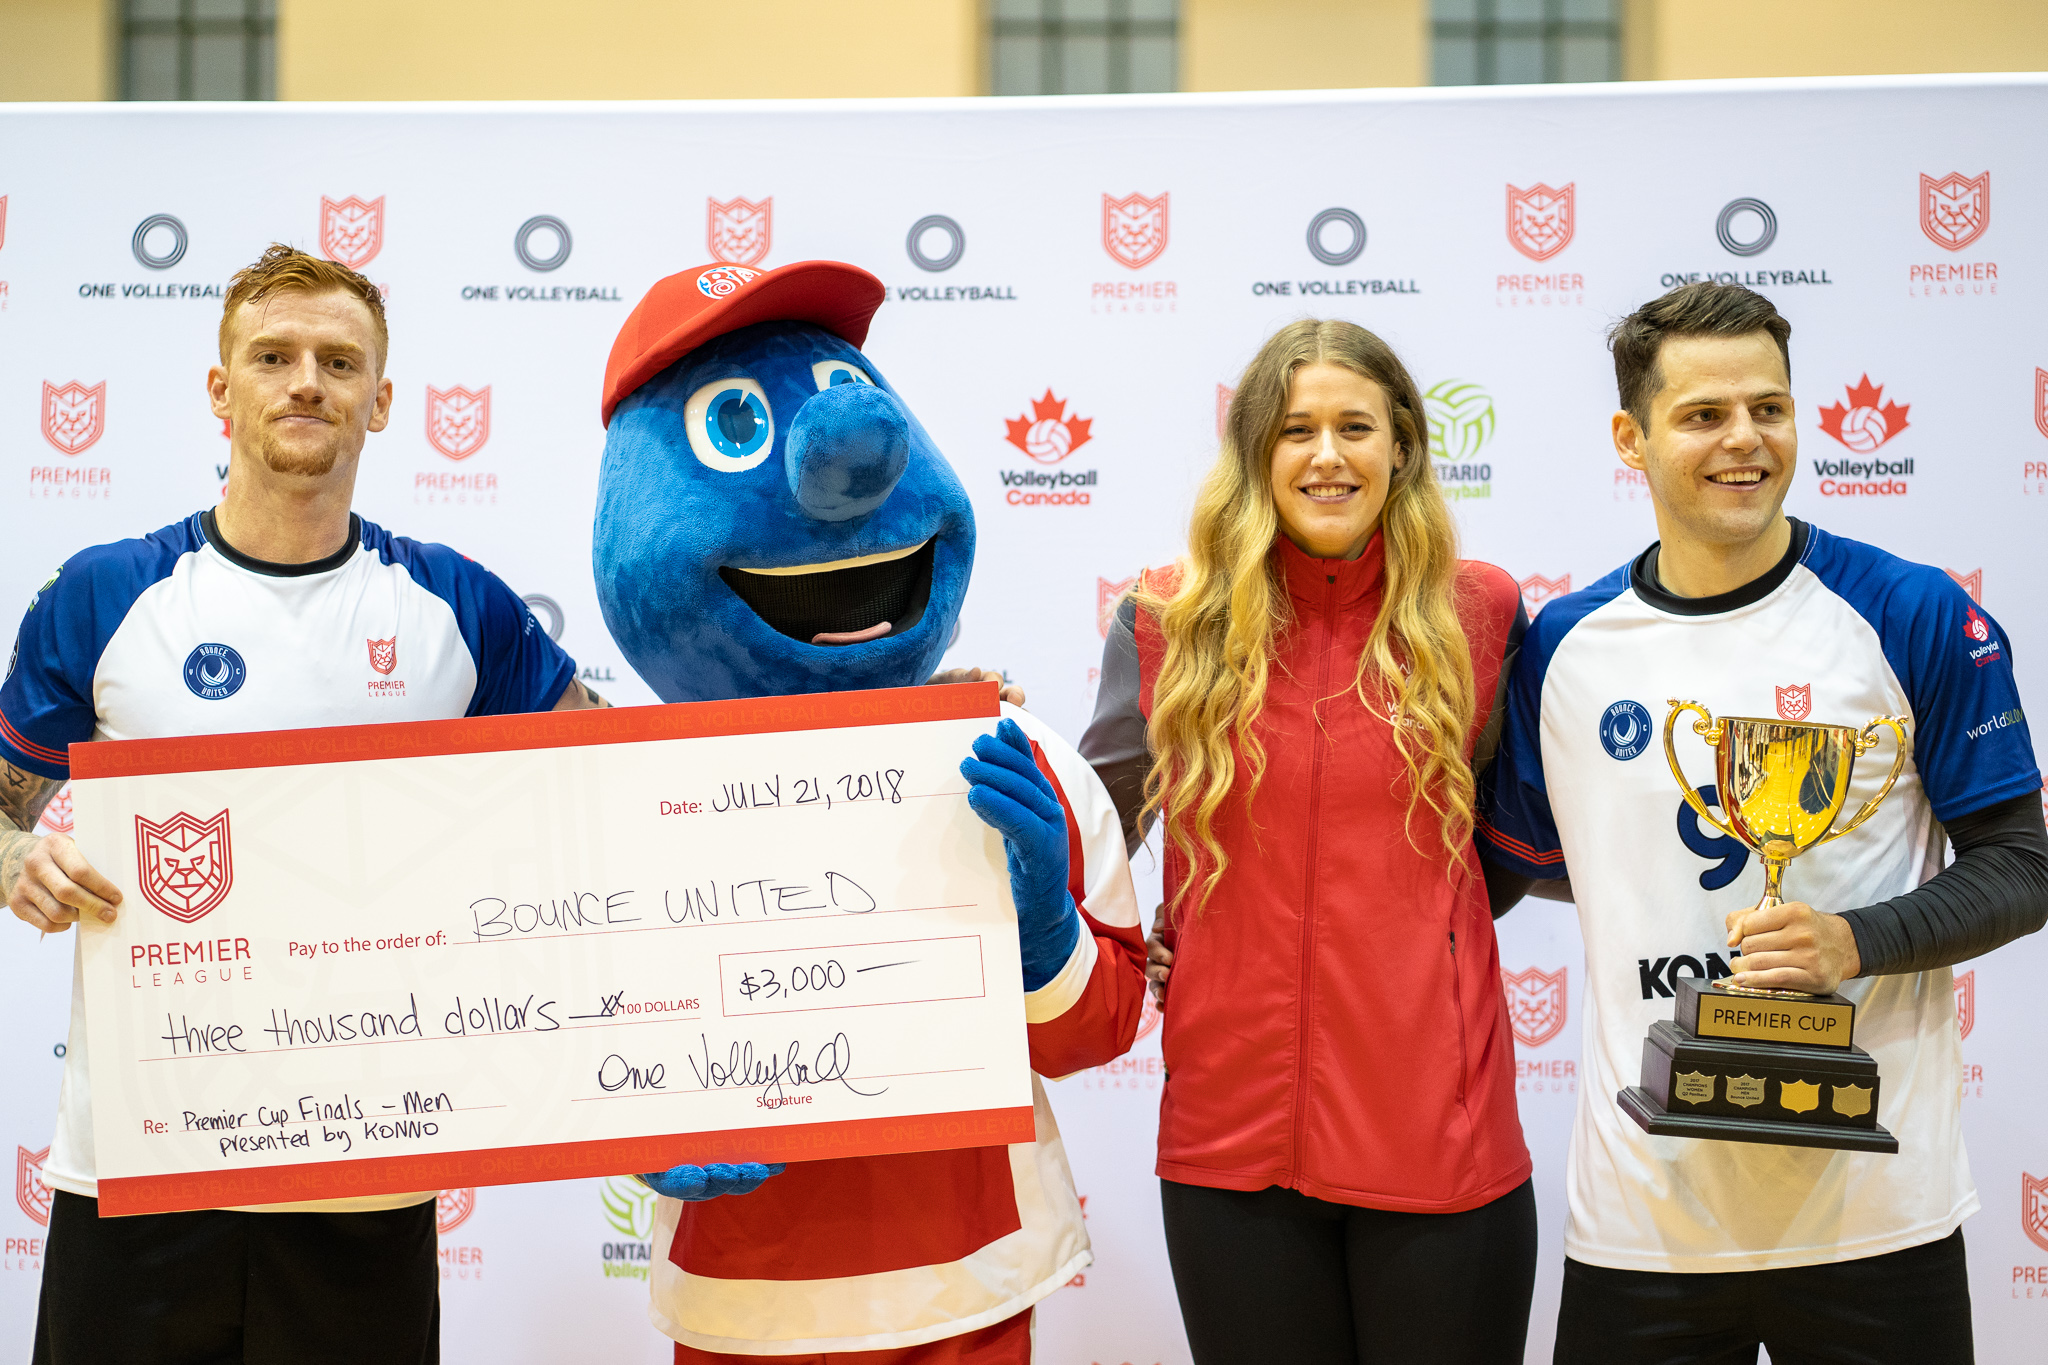 Men's Champions - Bounce United Trophy presented by Jen Cross (Team Canada) and cheque presented by Boston Pizza to team captains Steve Hunt and Aleksa Miladinovic